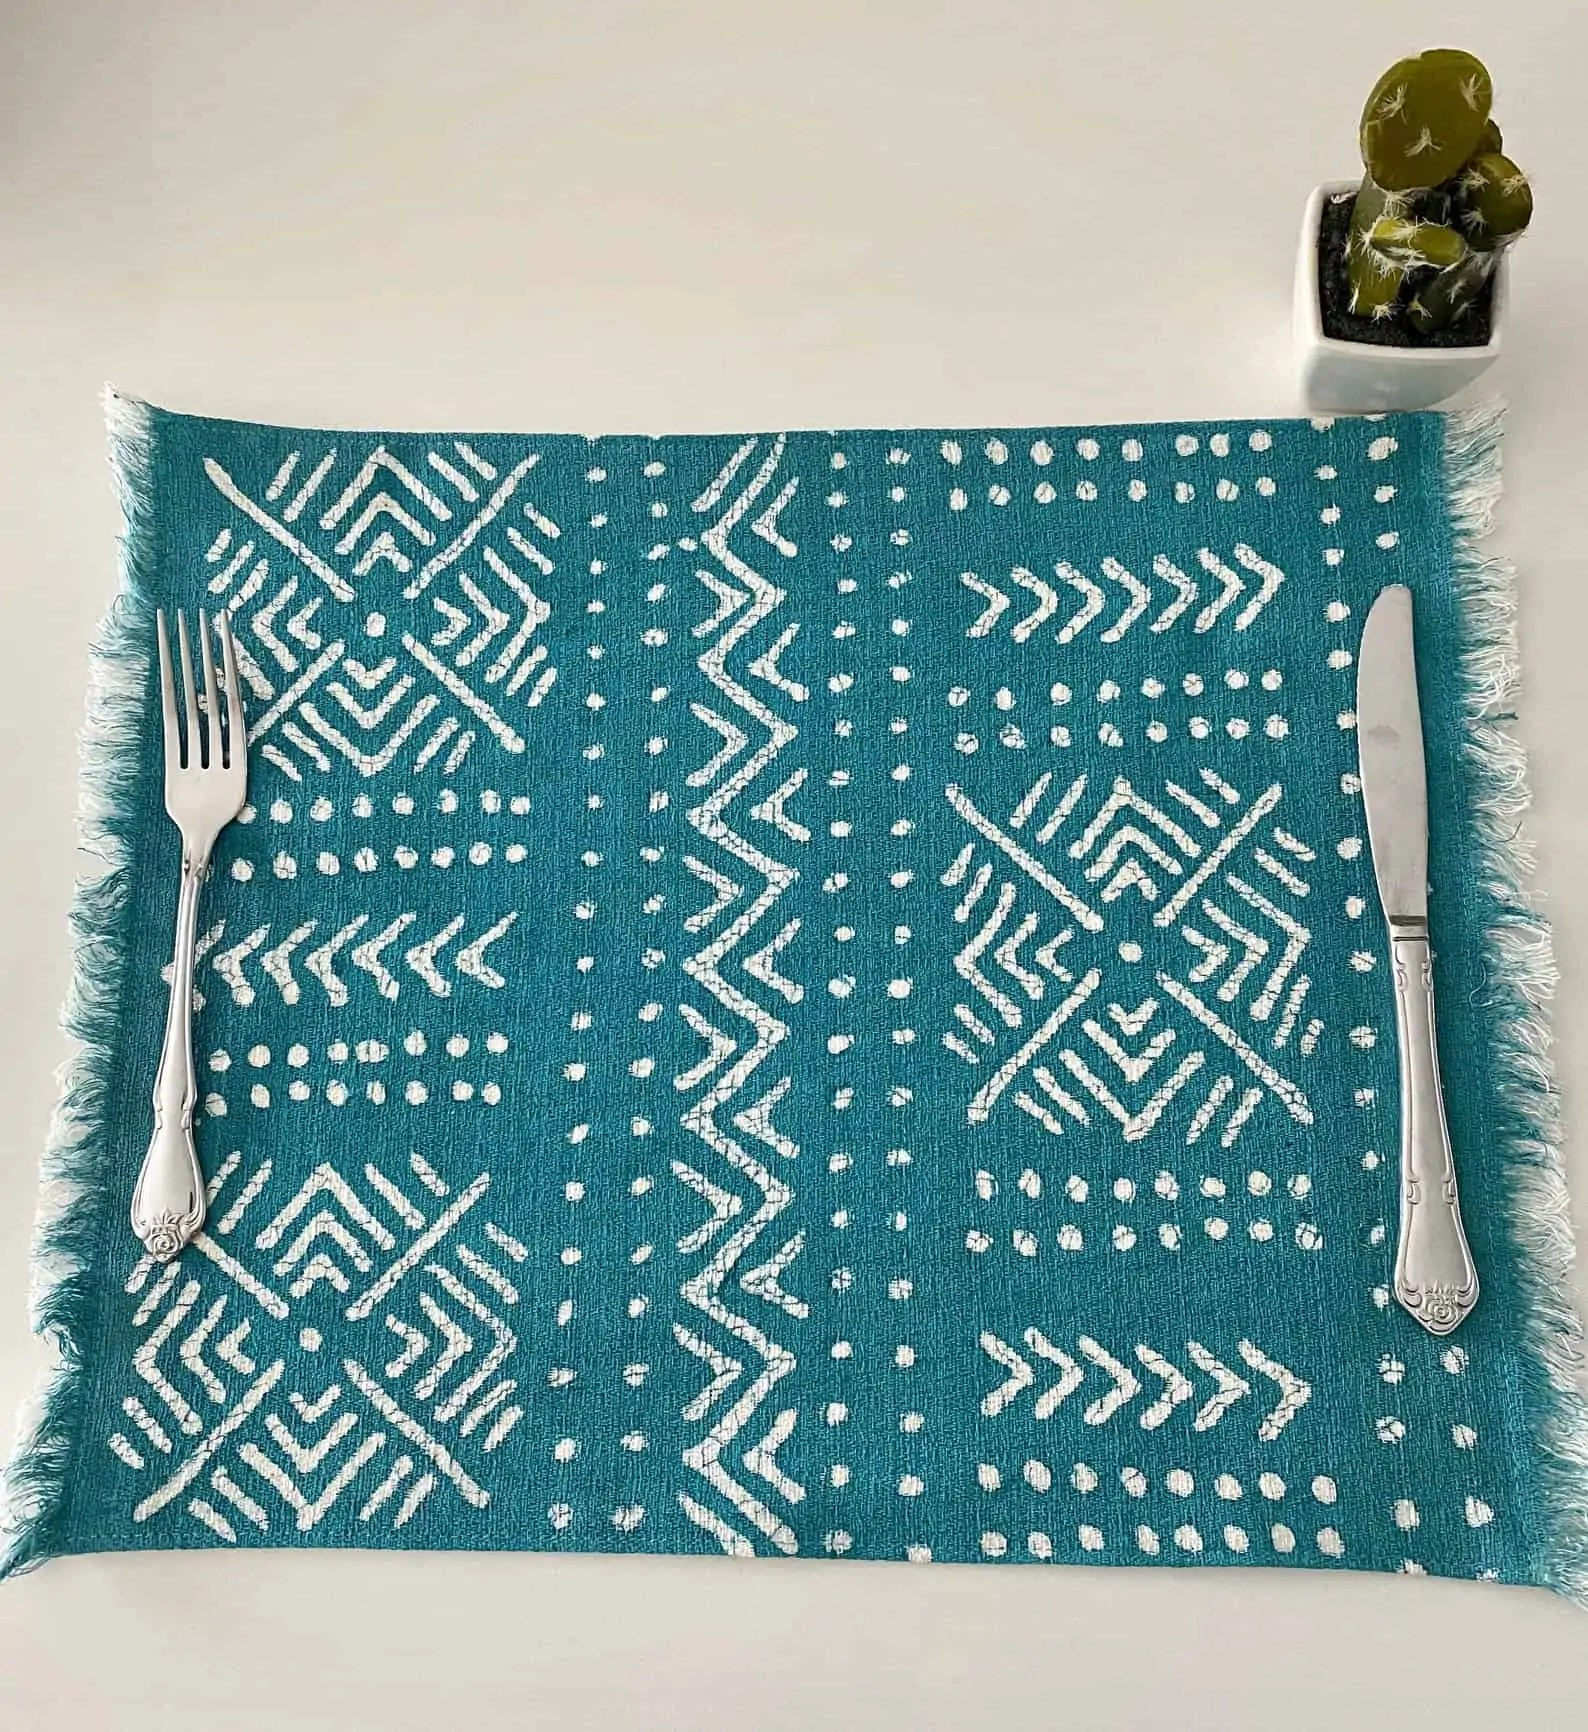 BatiquaGifts Buy Black | Canadian Etsy Shop African FairTrade Textiles | Blue Patterned PlaceMat